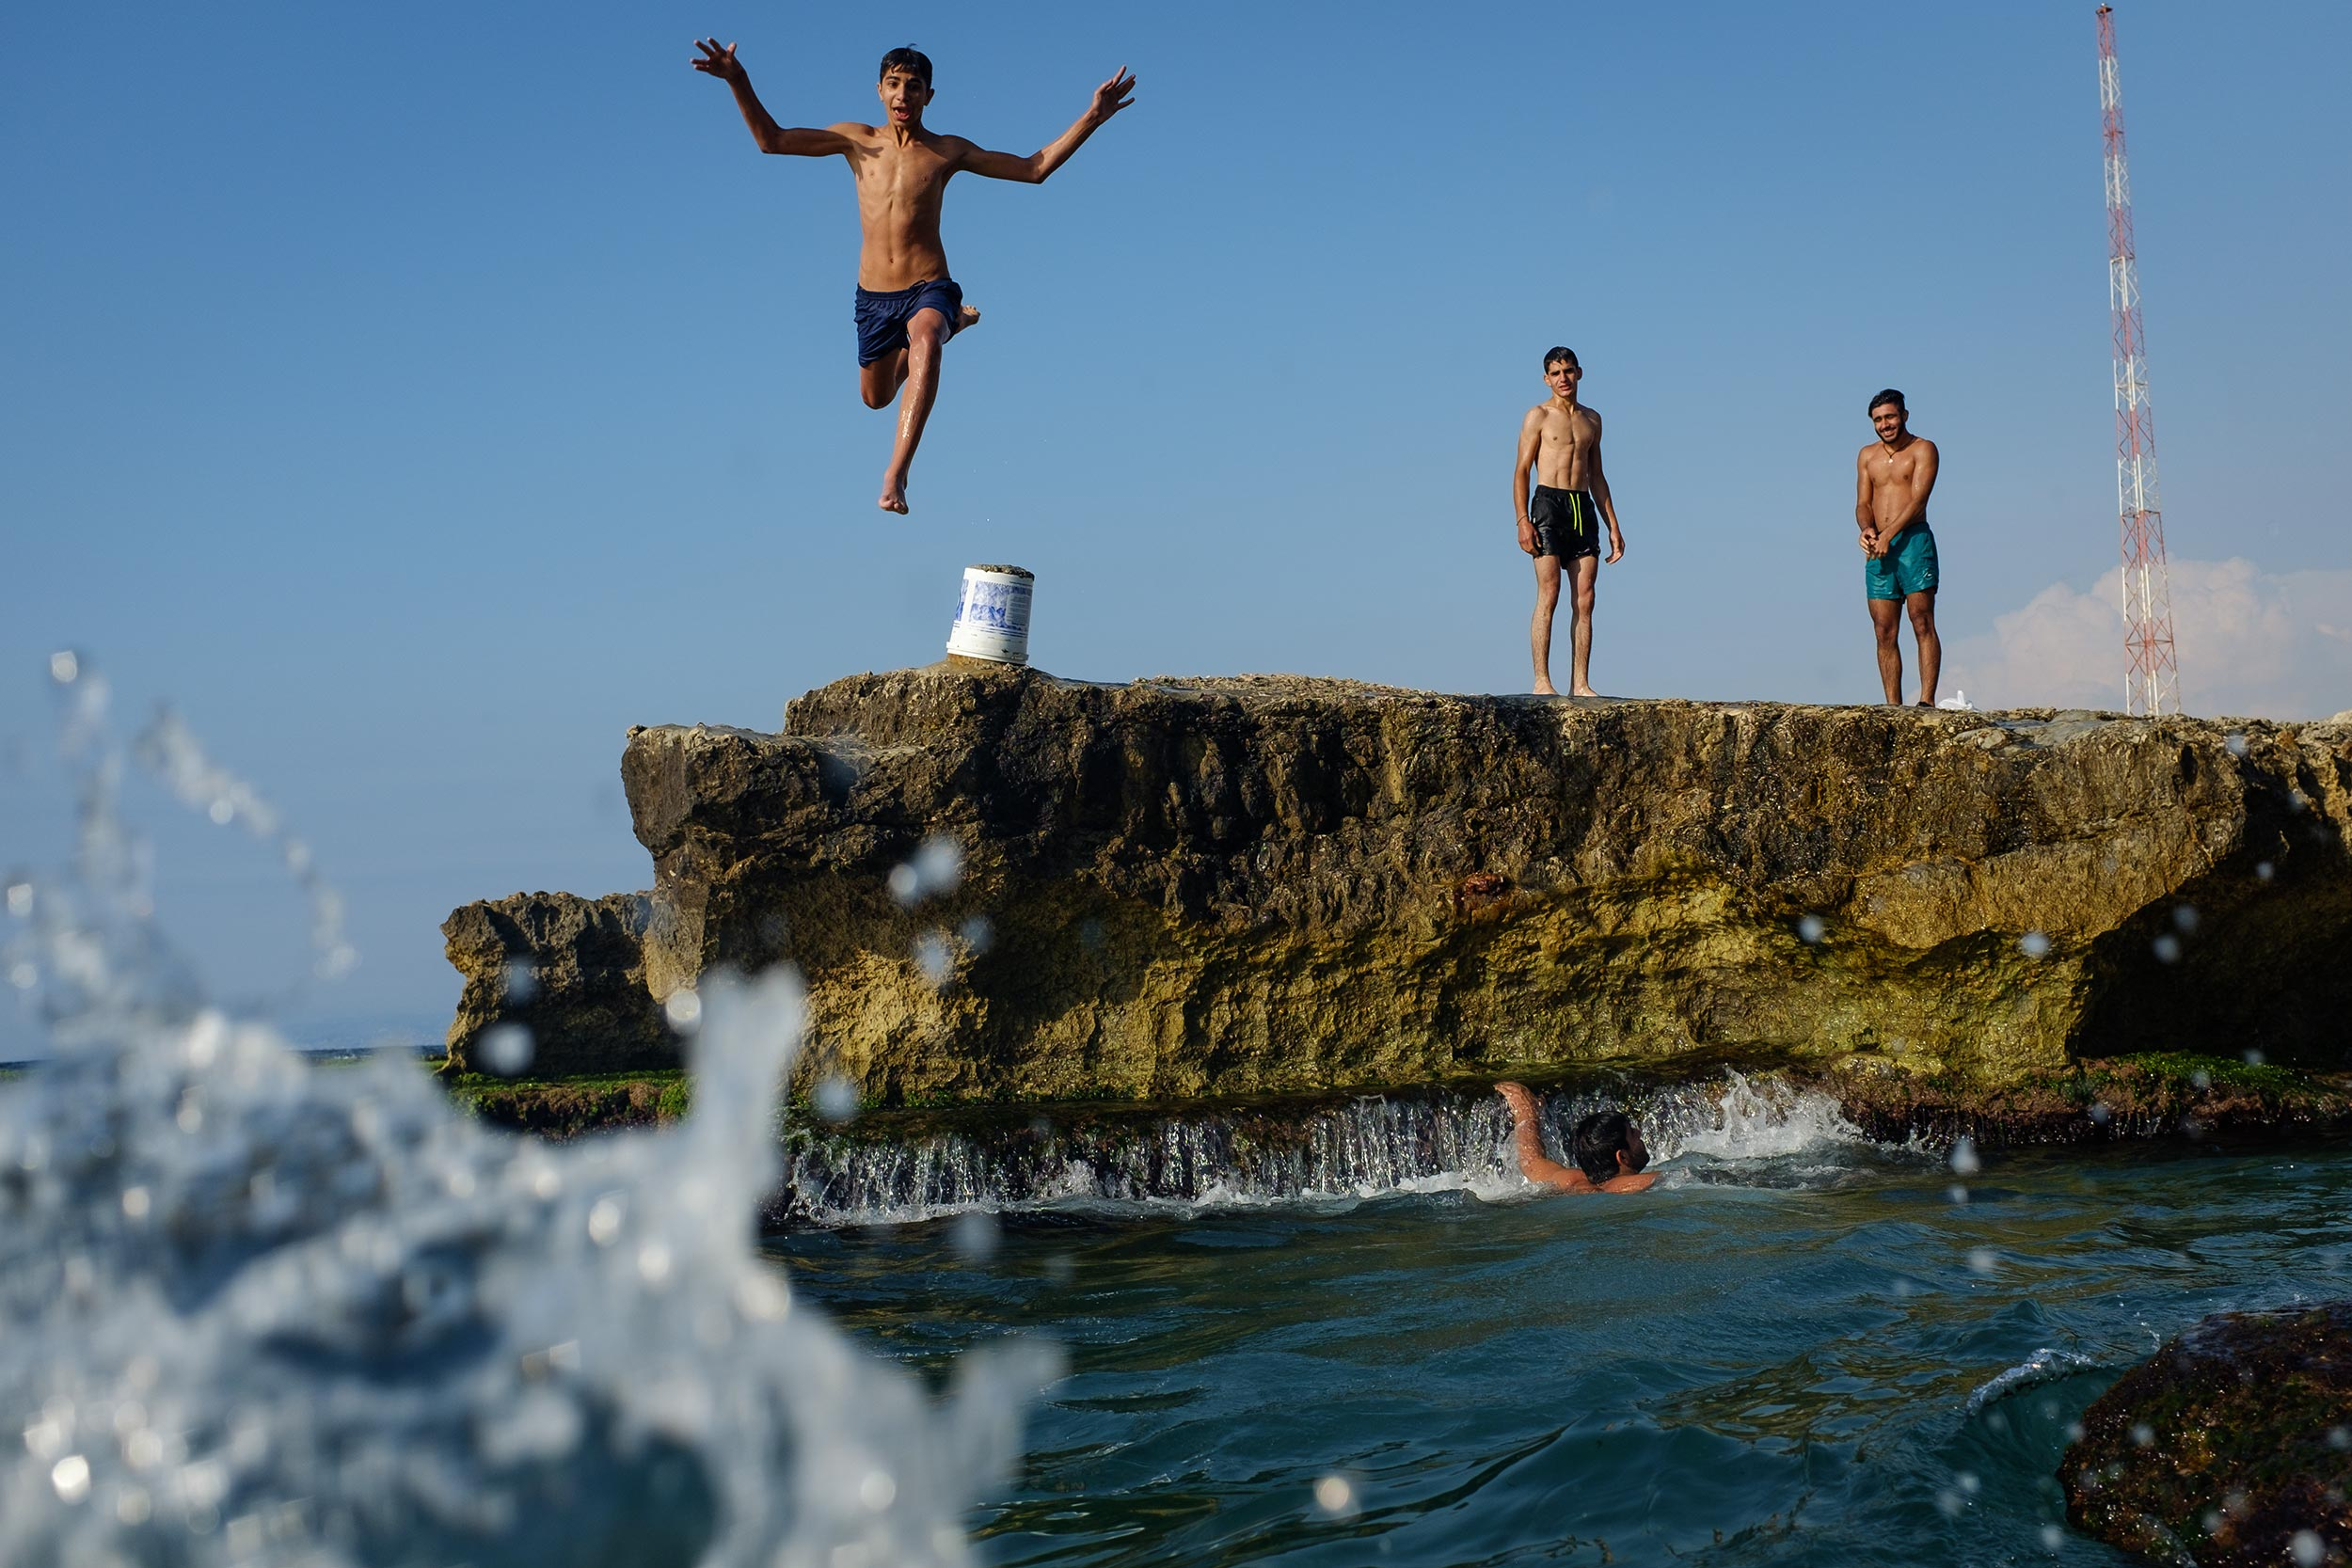 travel_lifestyle_lebanon_cliffjumping_ocean-9906